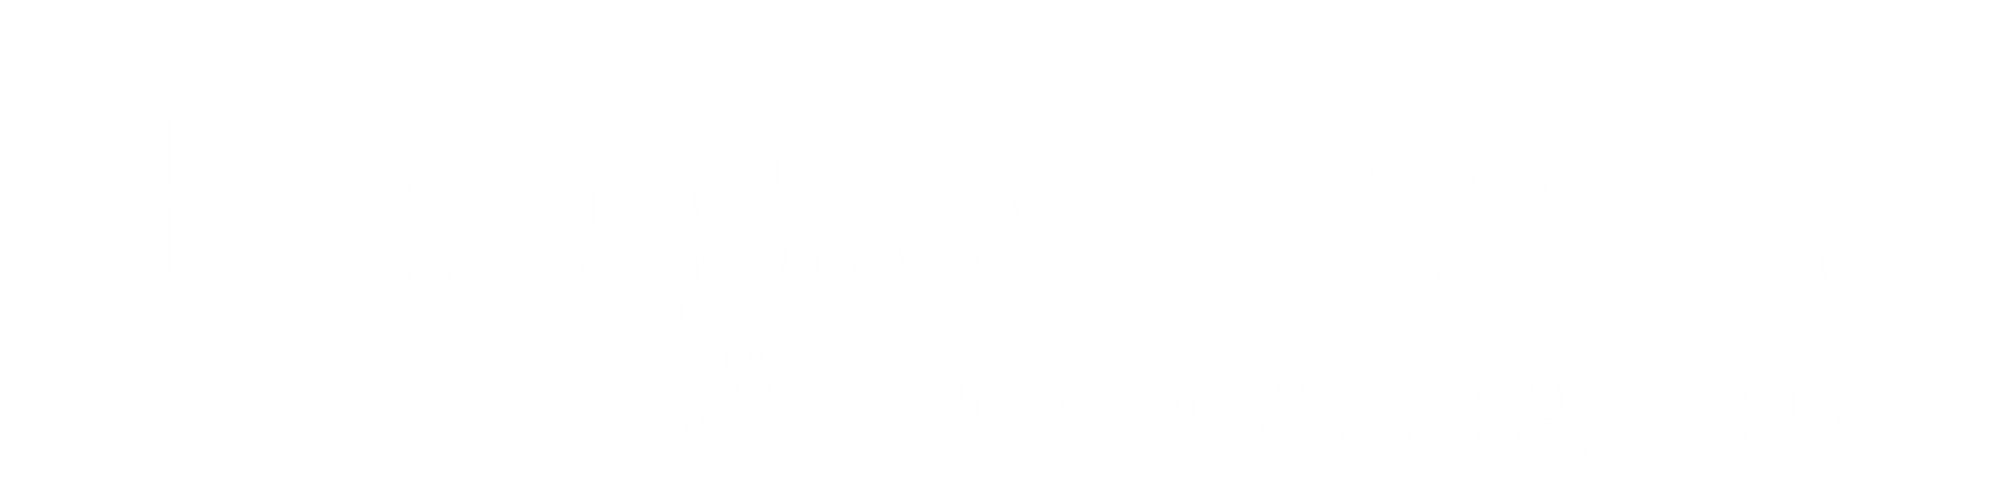 Kingston Paint & Decorating - Kingston, Ontario Paint & Decorating Products Retailer